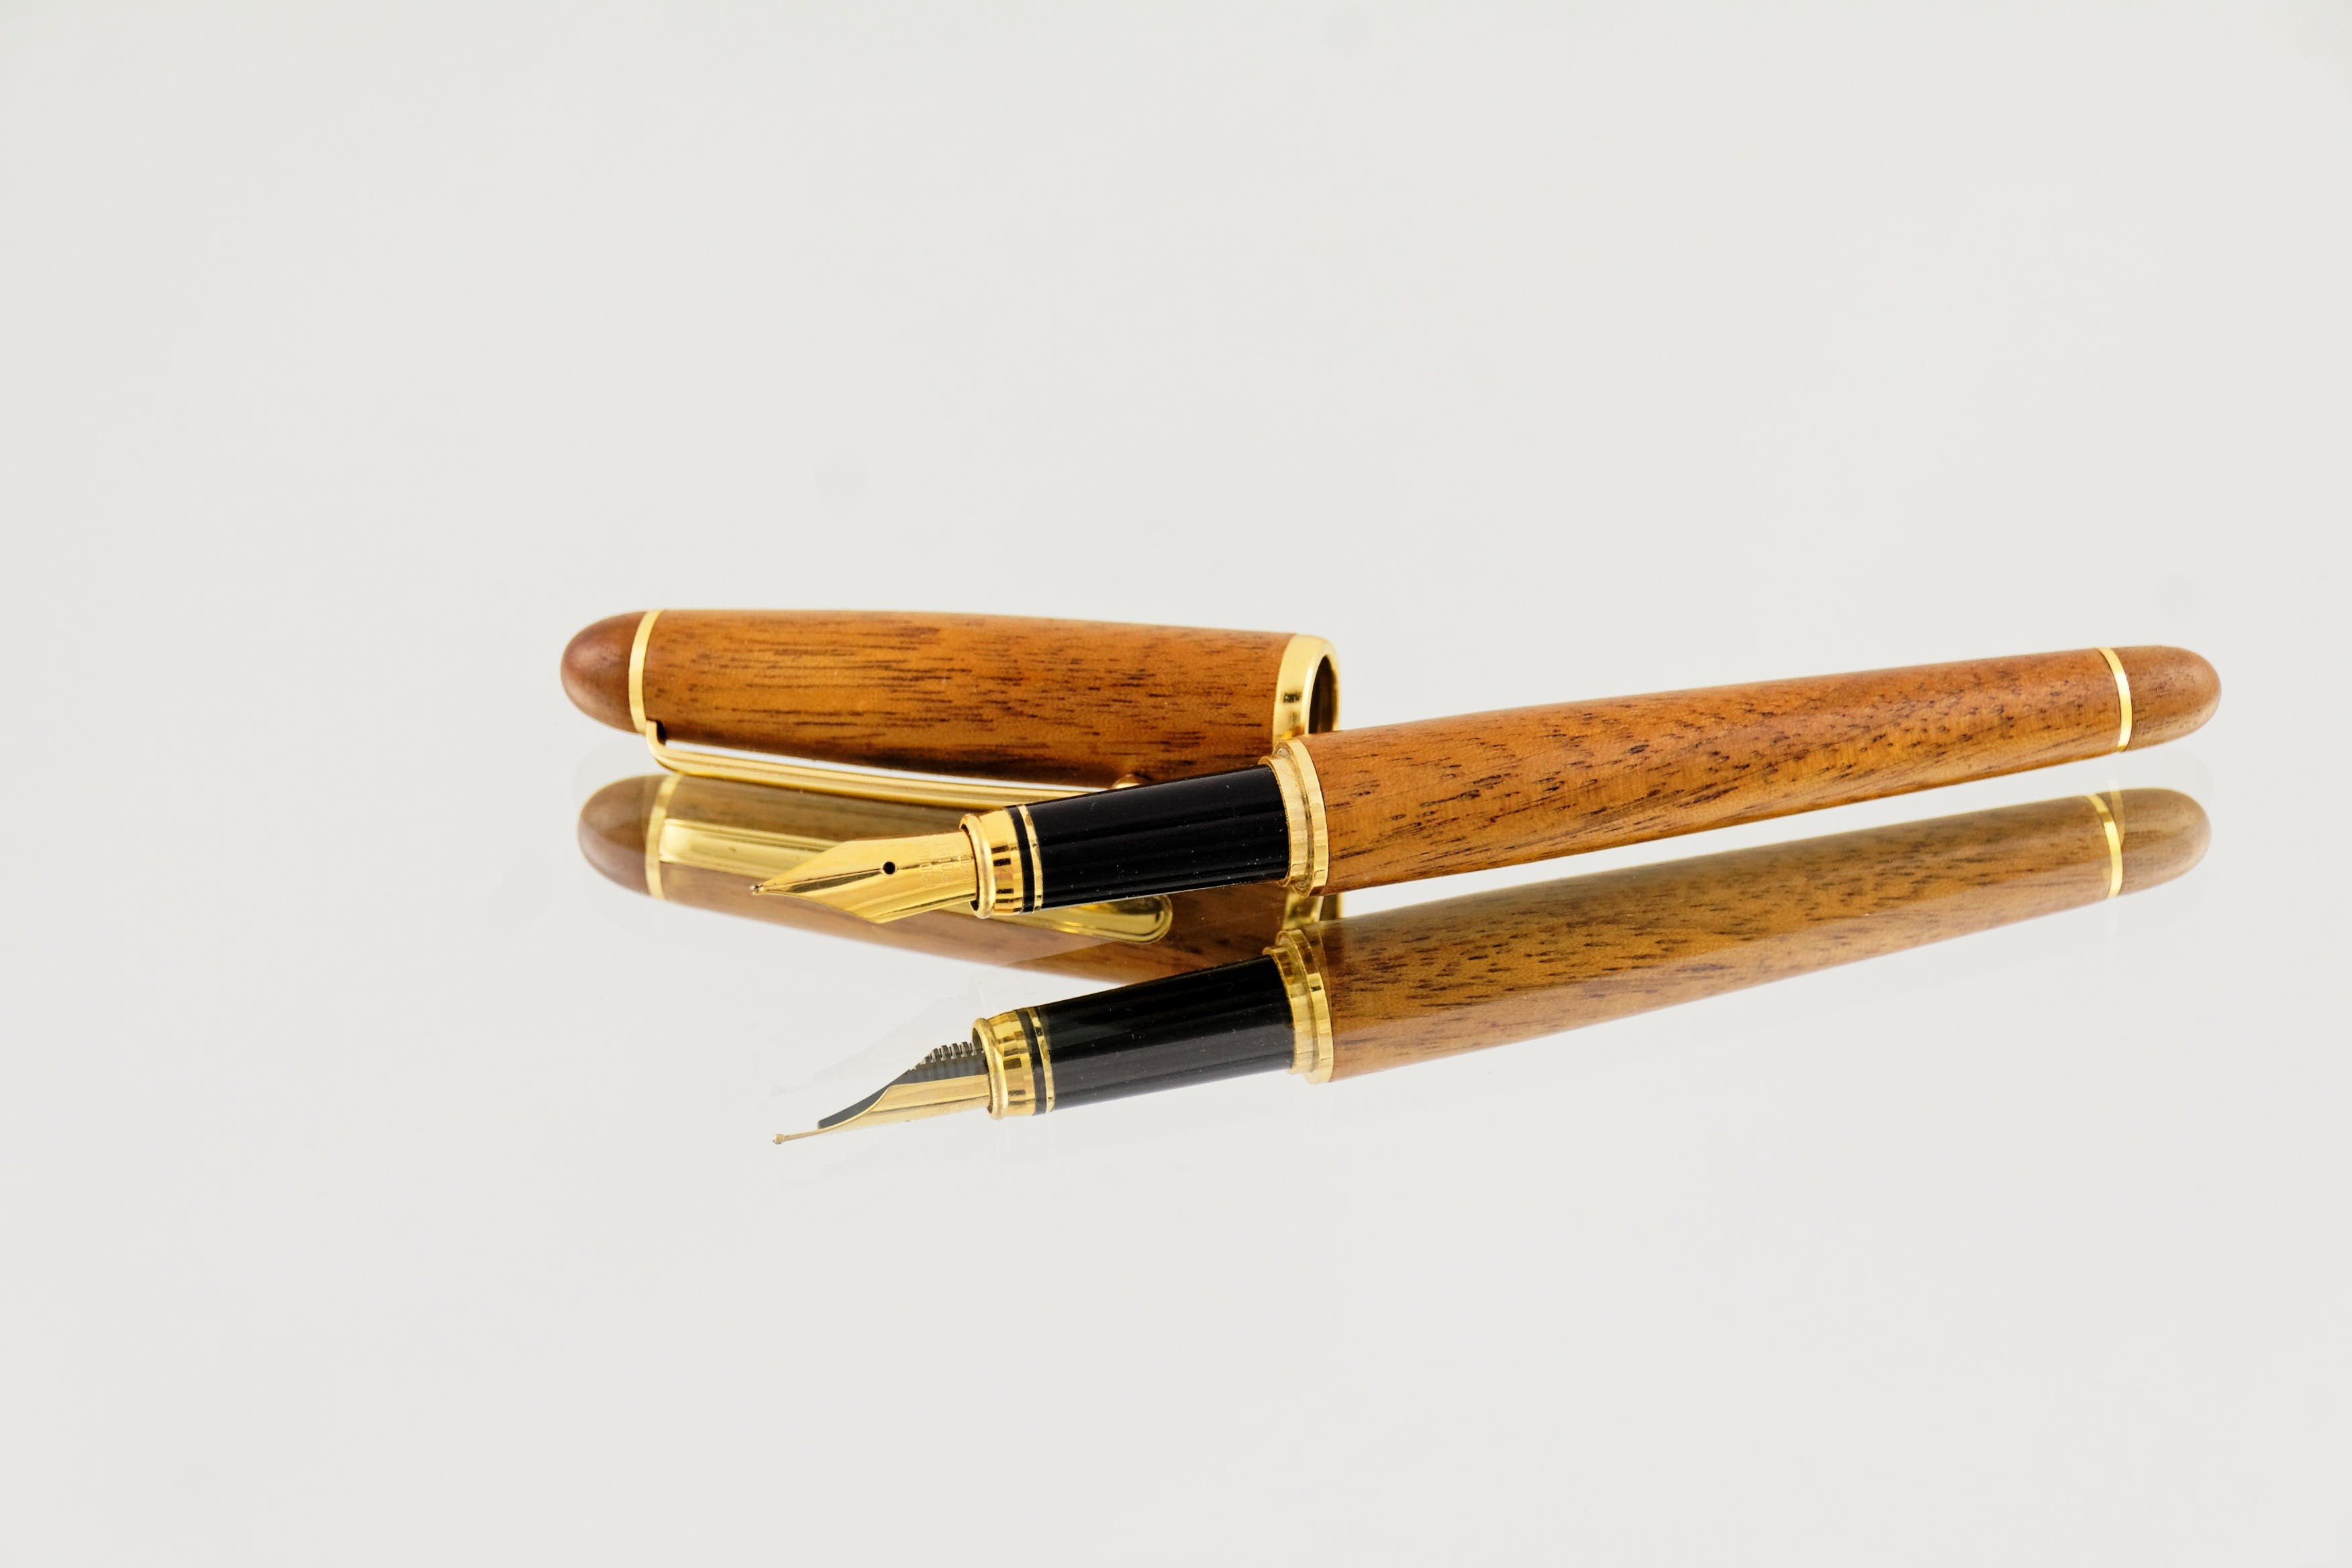 Brown and Black Fountain Pen